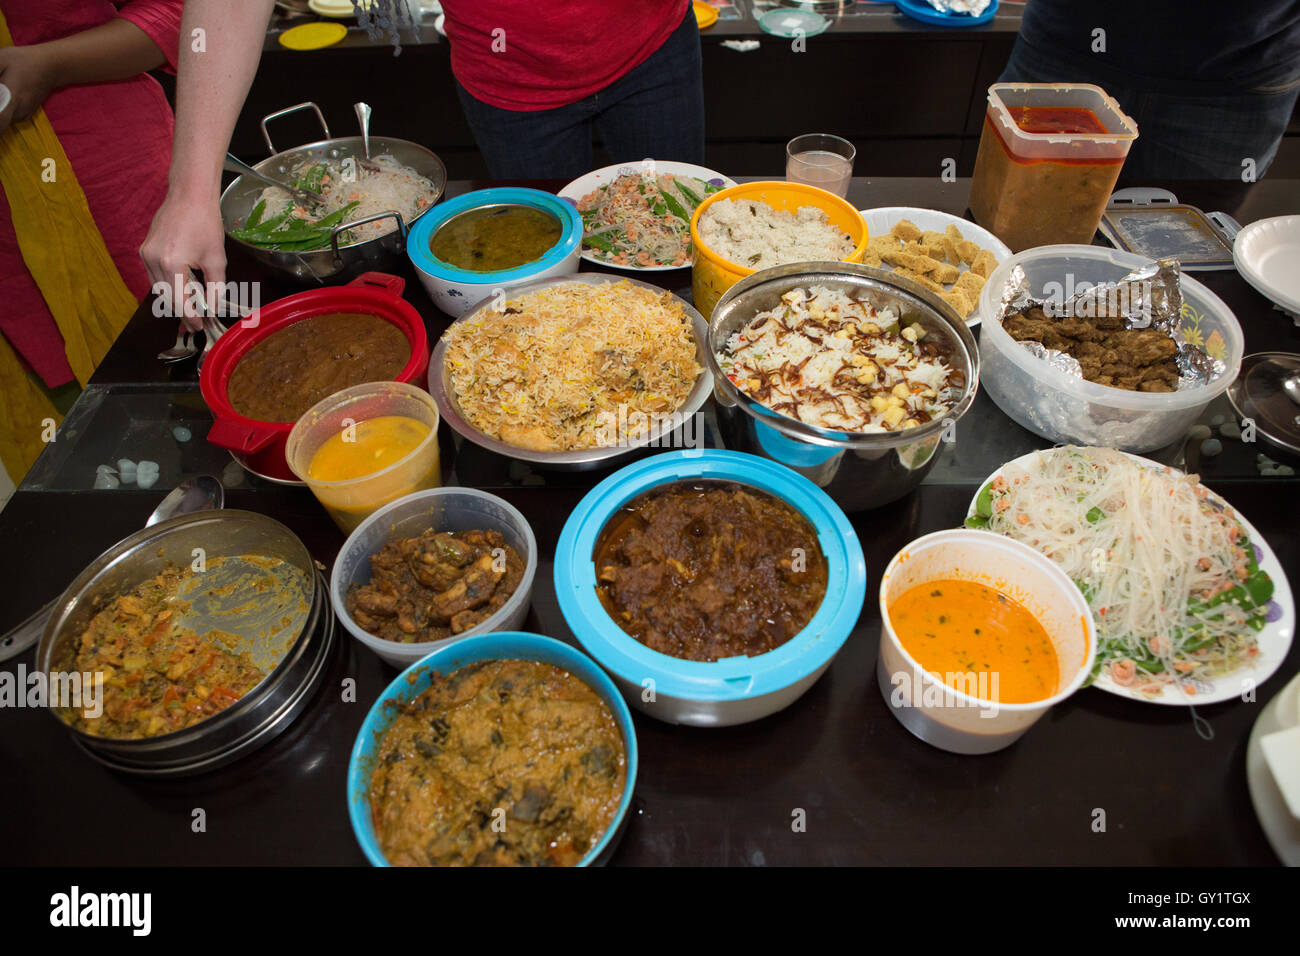 Indian Food For Office Potluck